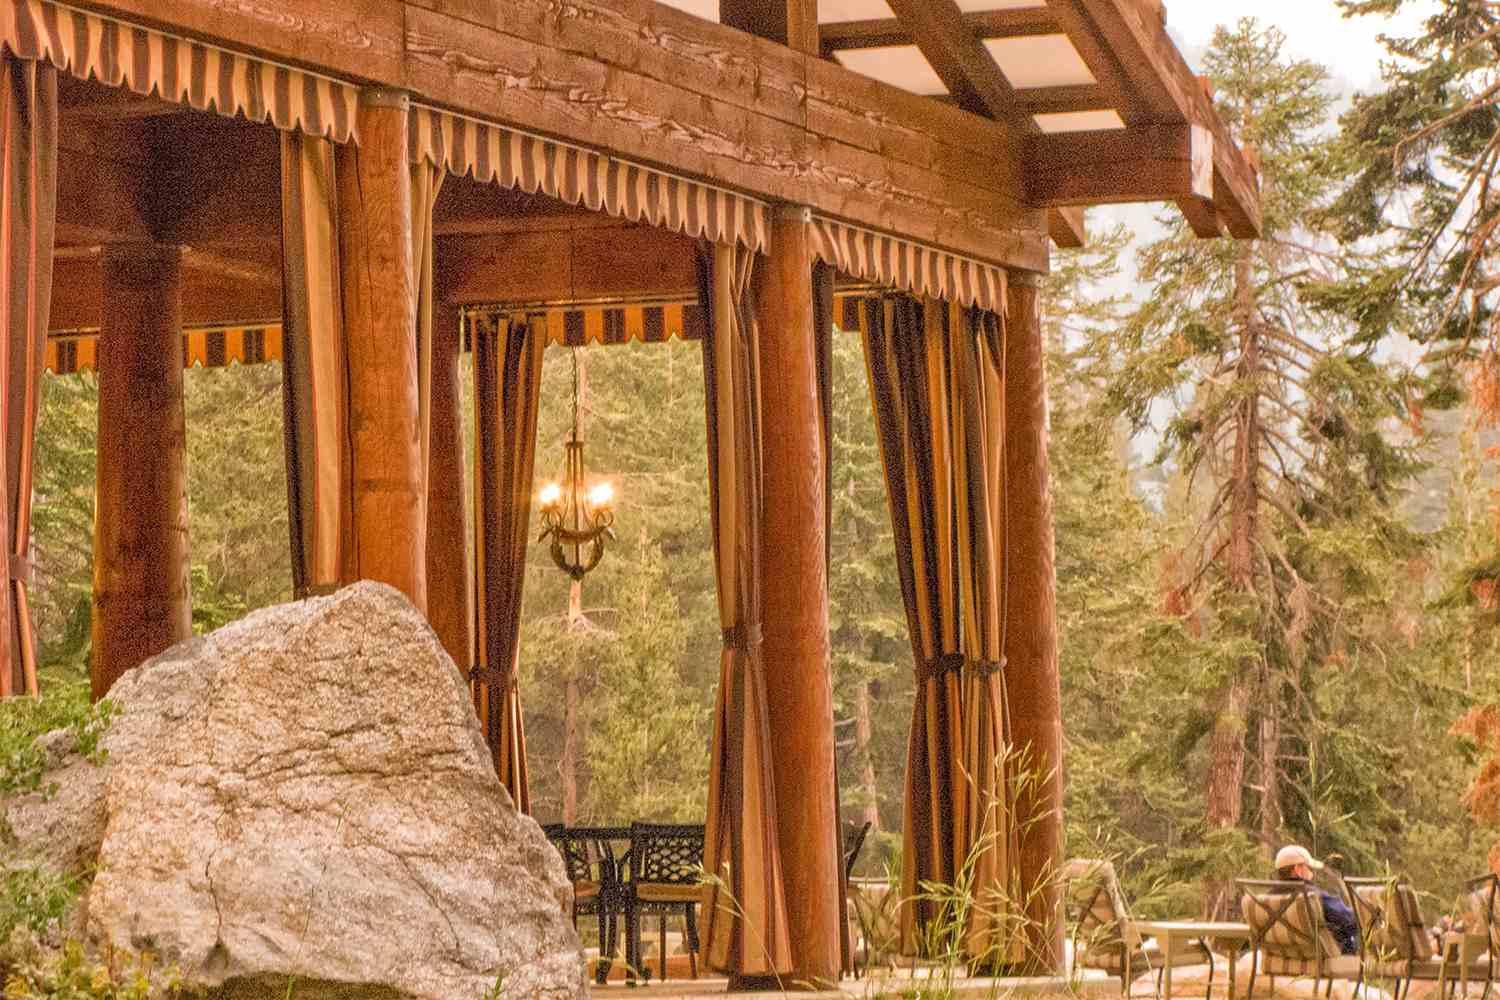 The Pavilion at Sequoia High Sierra Camp